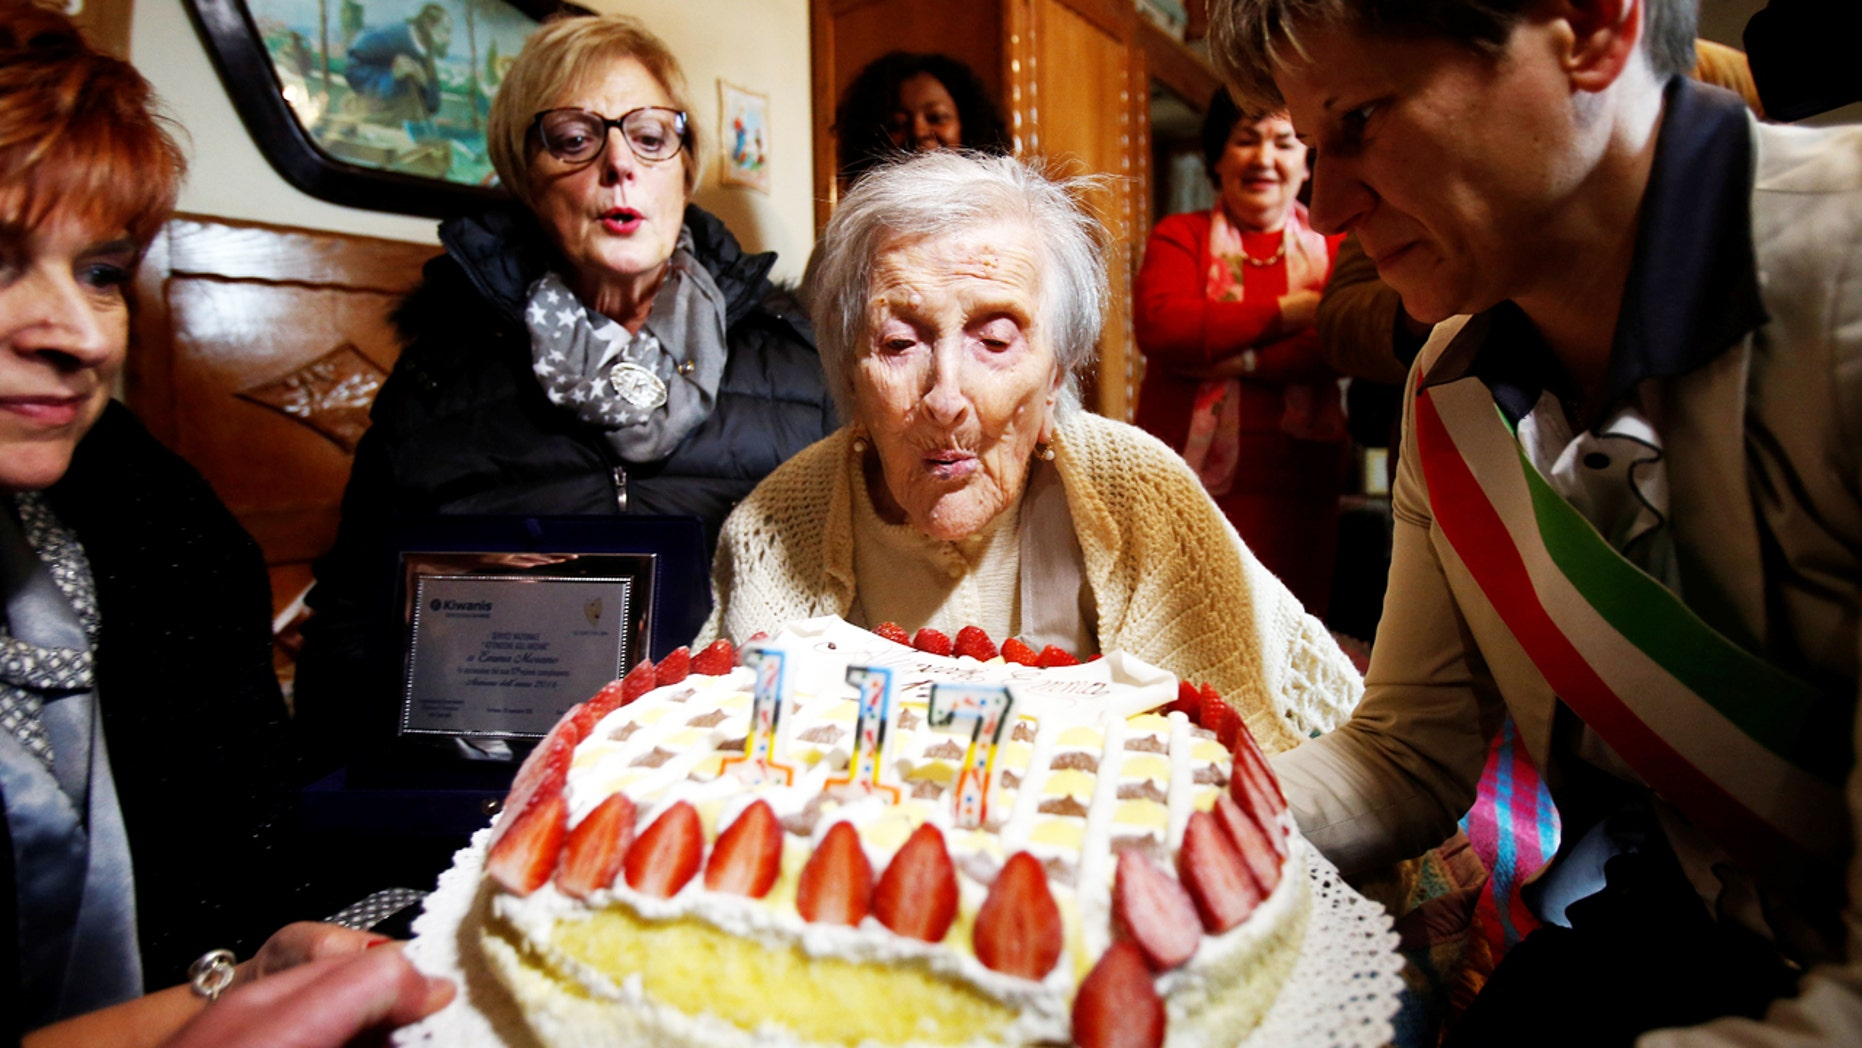 Emma Morano, thought to be the world's oldest person and the last to be born in the 1800s, blows candles during her 117th birthday in Verbania, northern Italy Nov. 29, 2011.